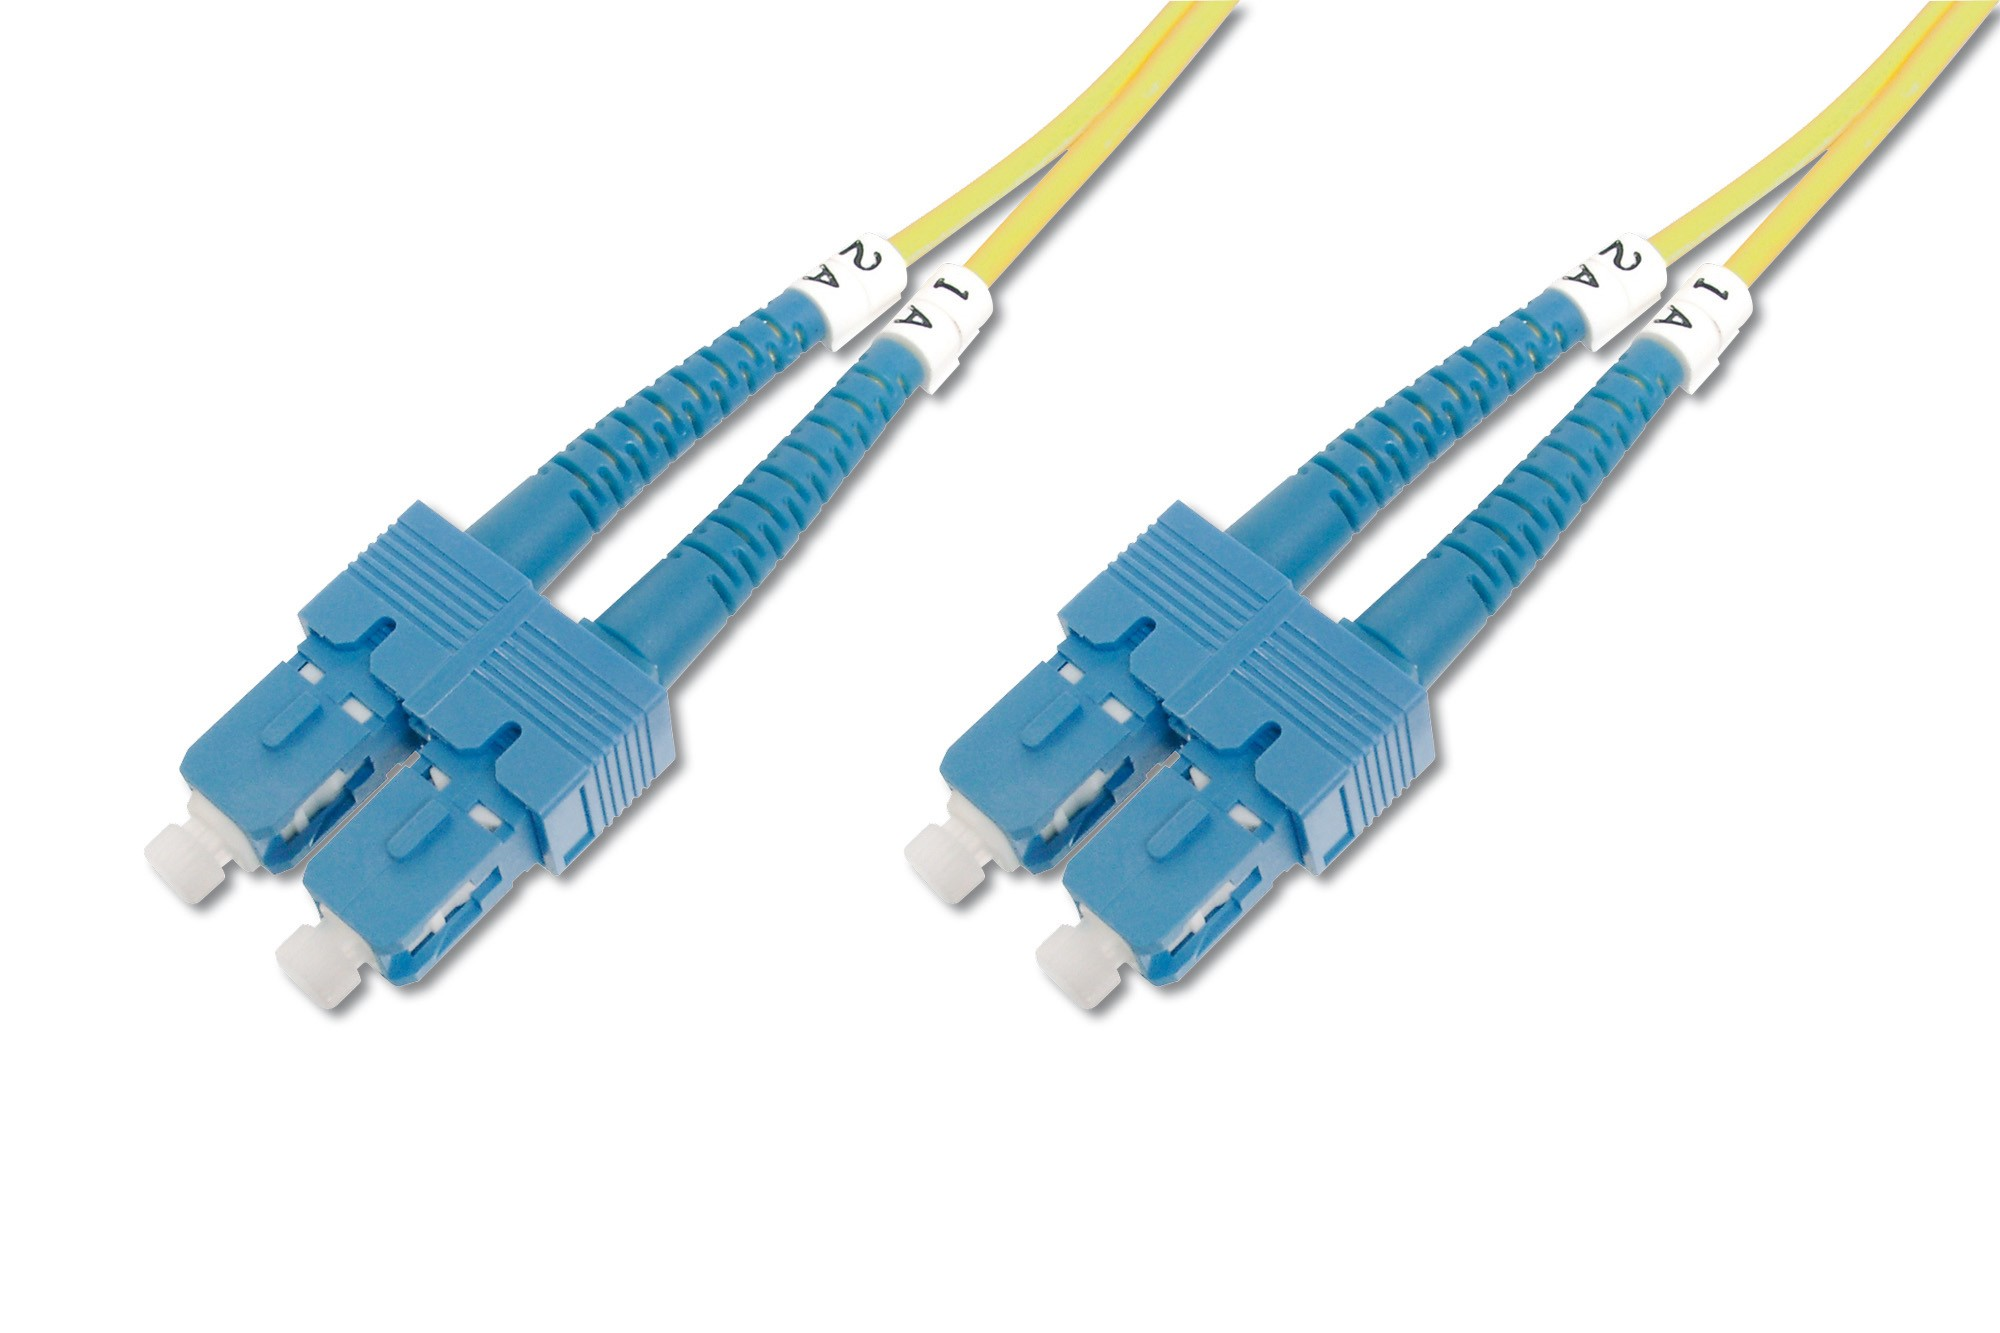 DIGITUS DK-2922-05 5M SC YELLOW FIBER OPTIC CABLE